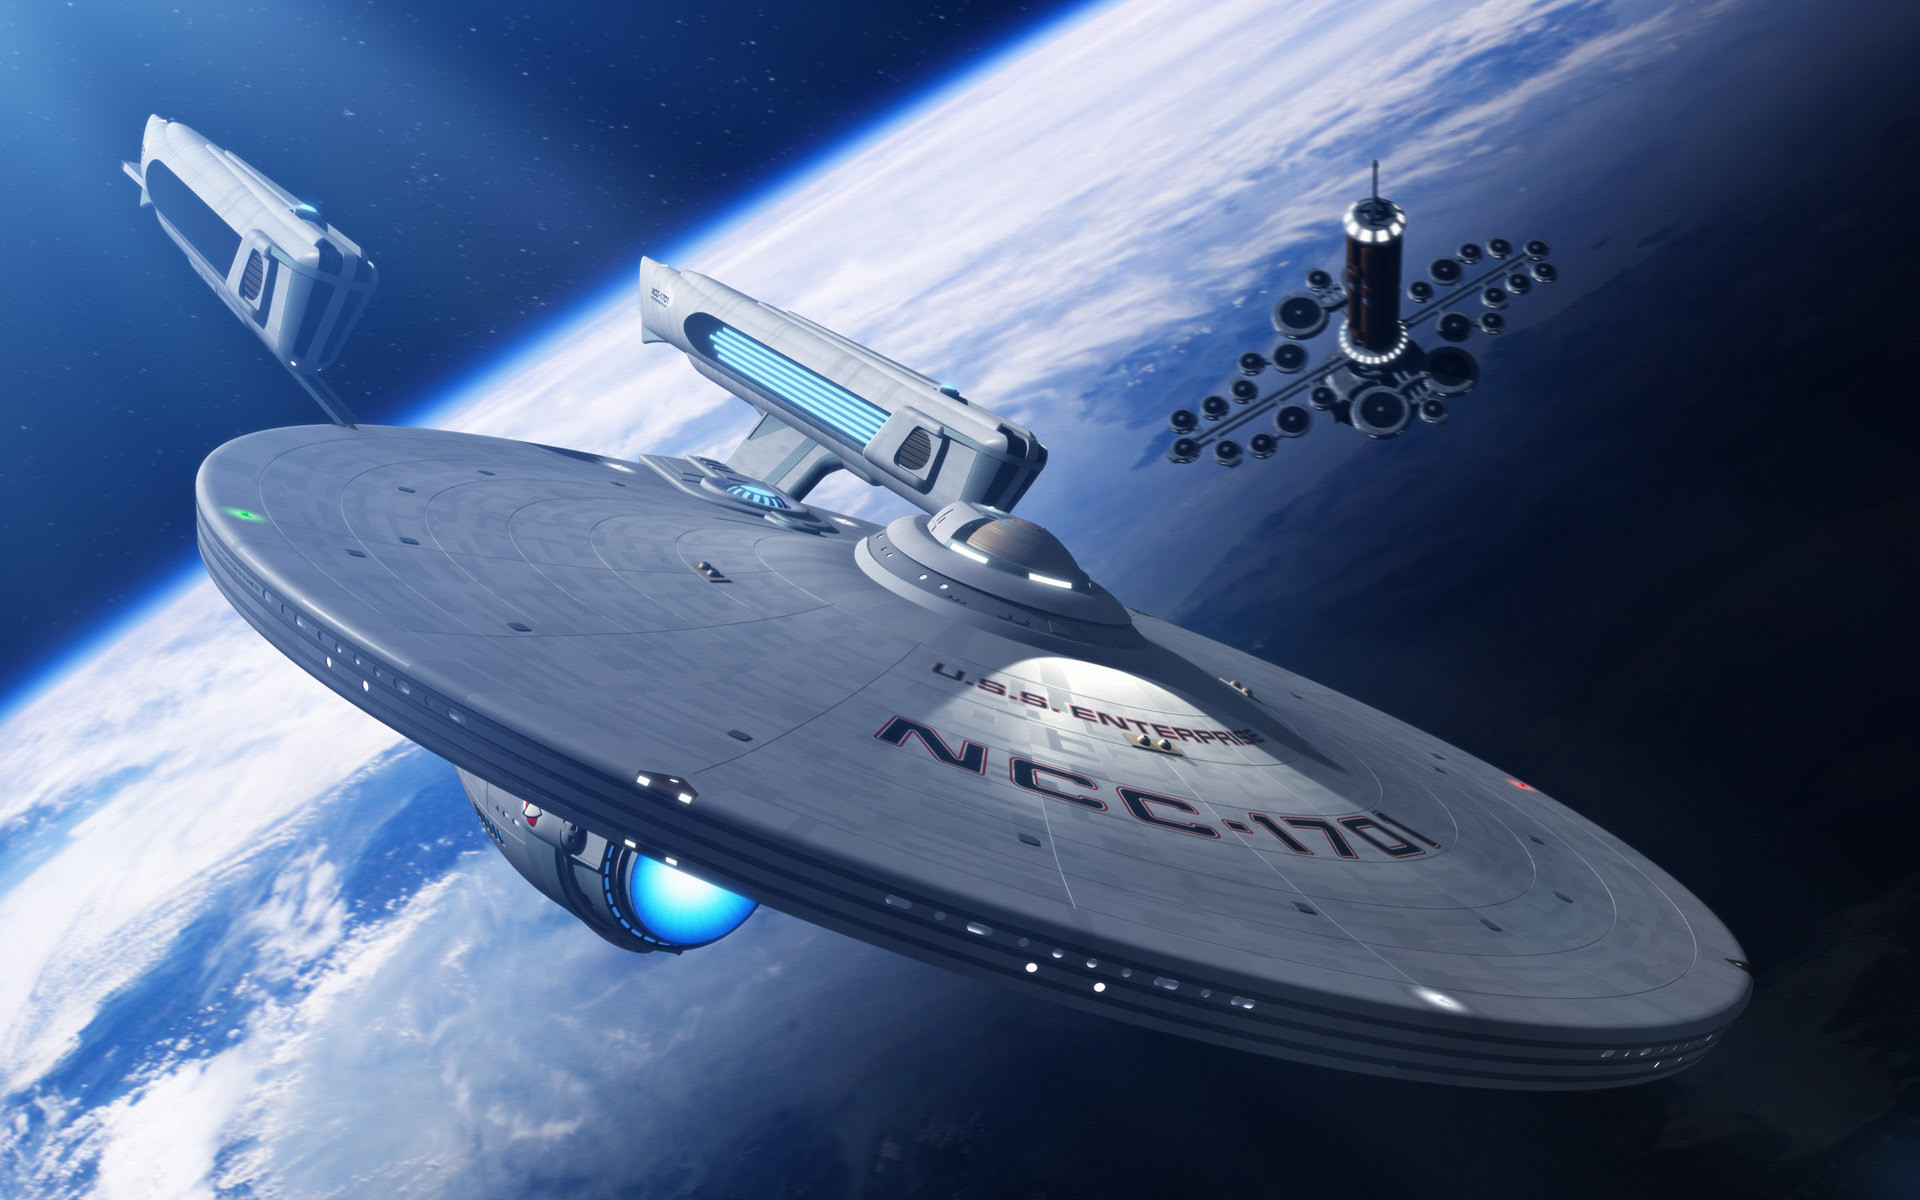 1920x1200 Star Trek Enterprise - Wallpaper ID: 591491672